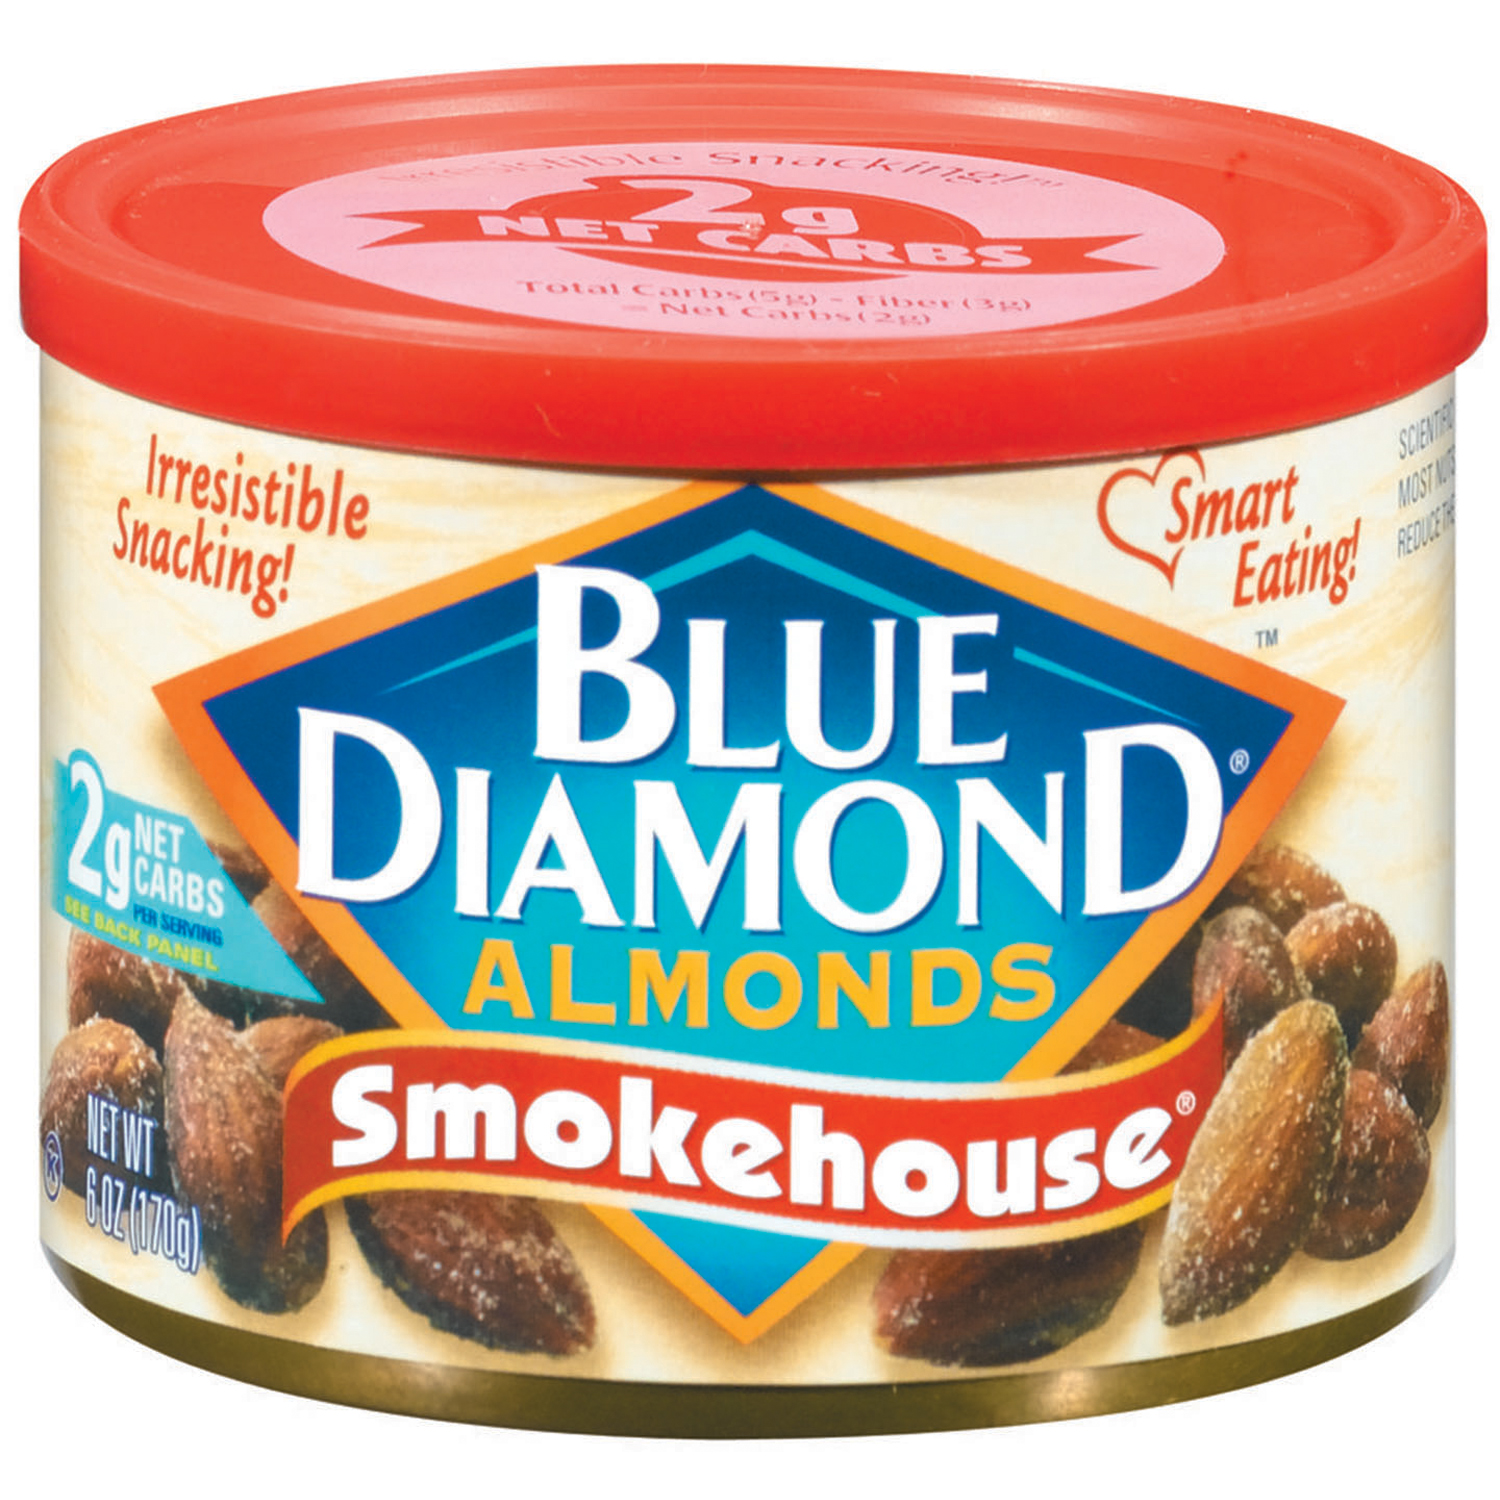 Blue Diamond�� Smokehouse Almonds 6 oz. Canister